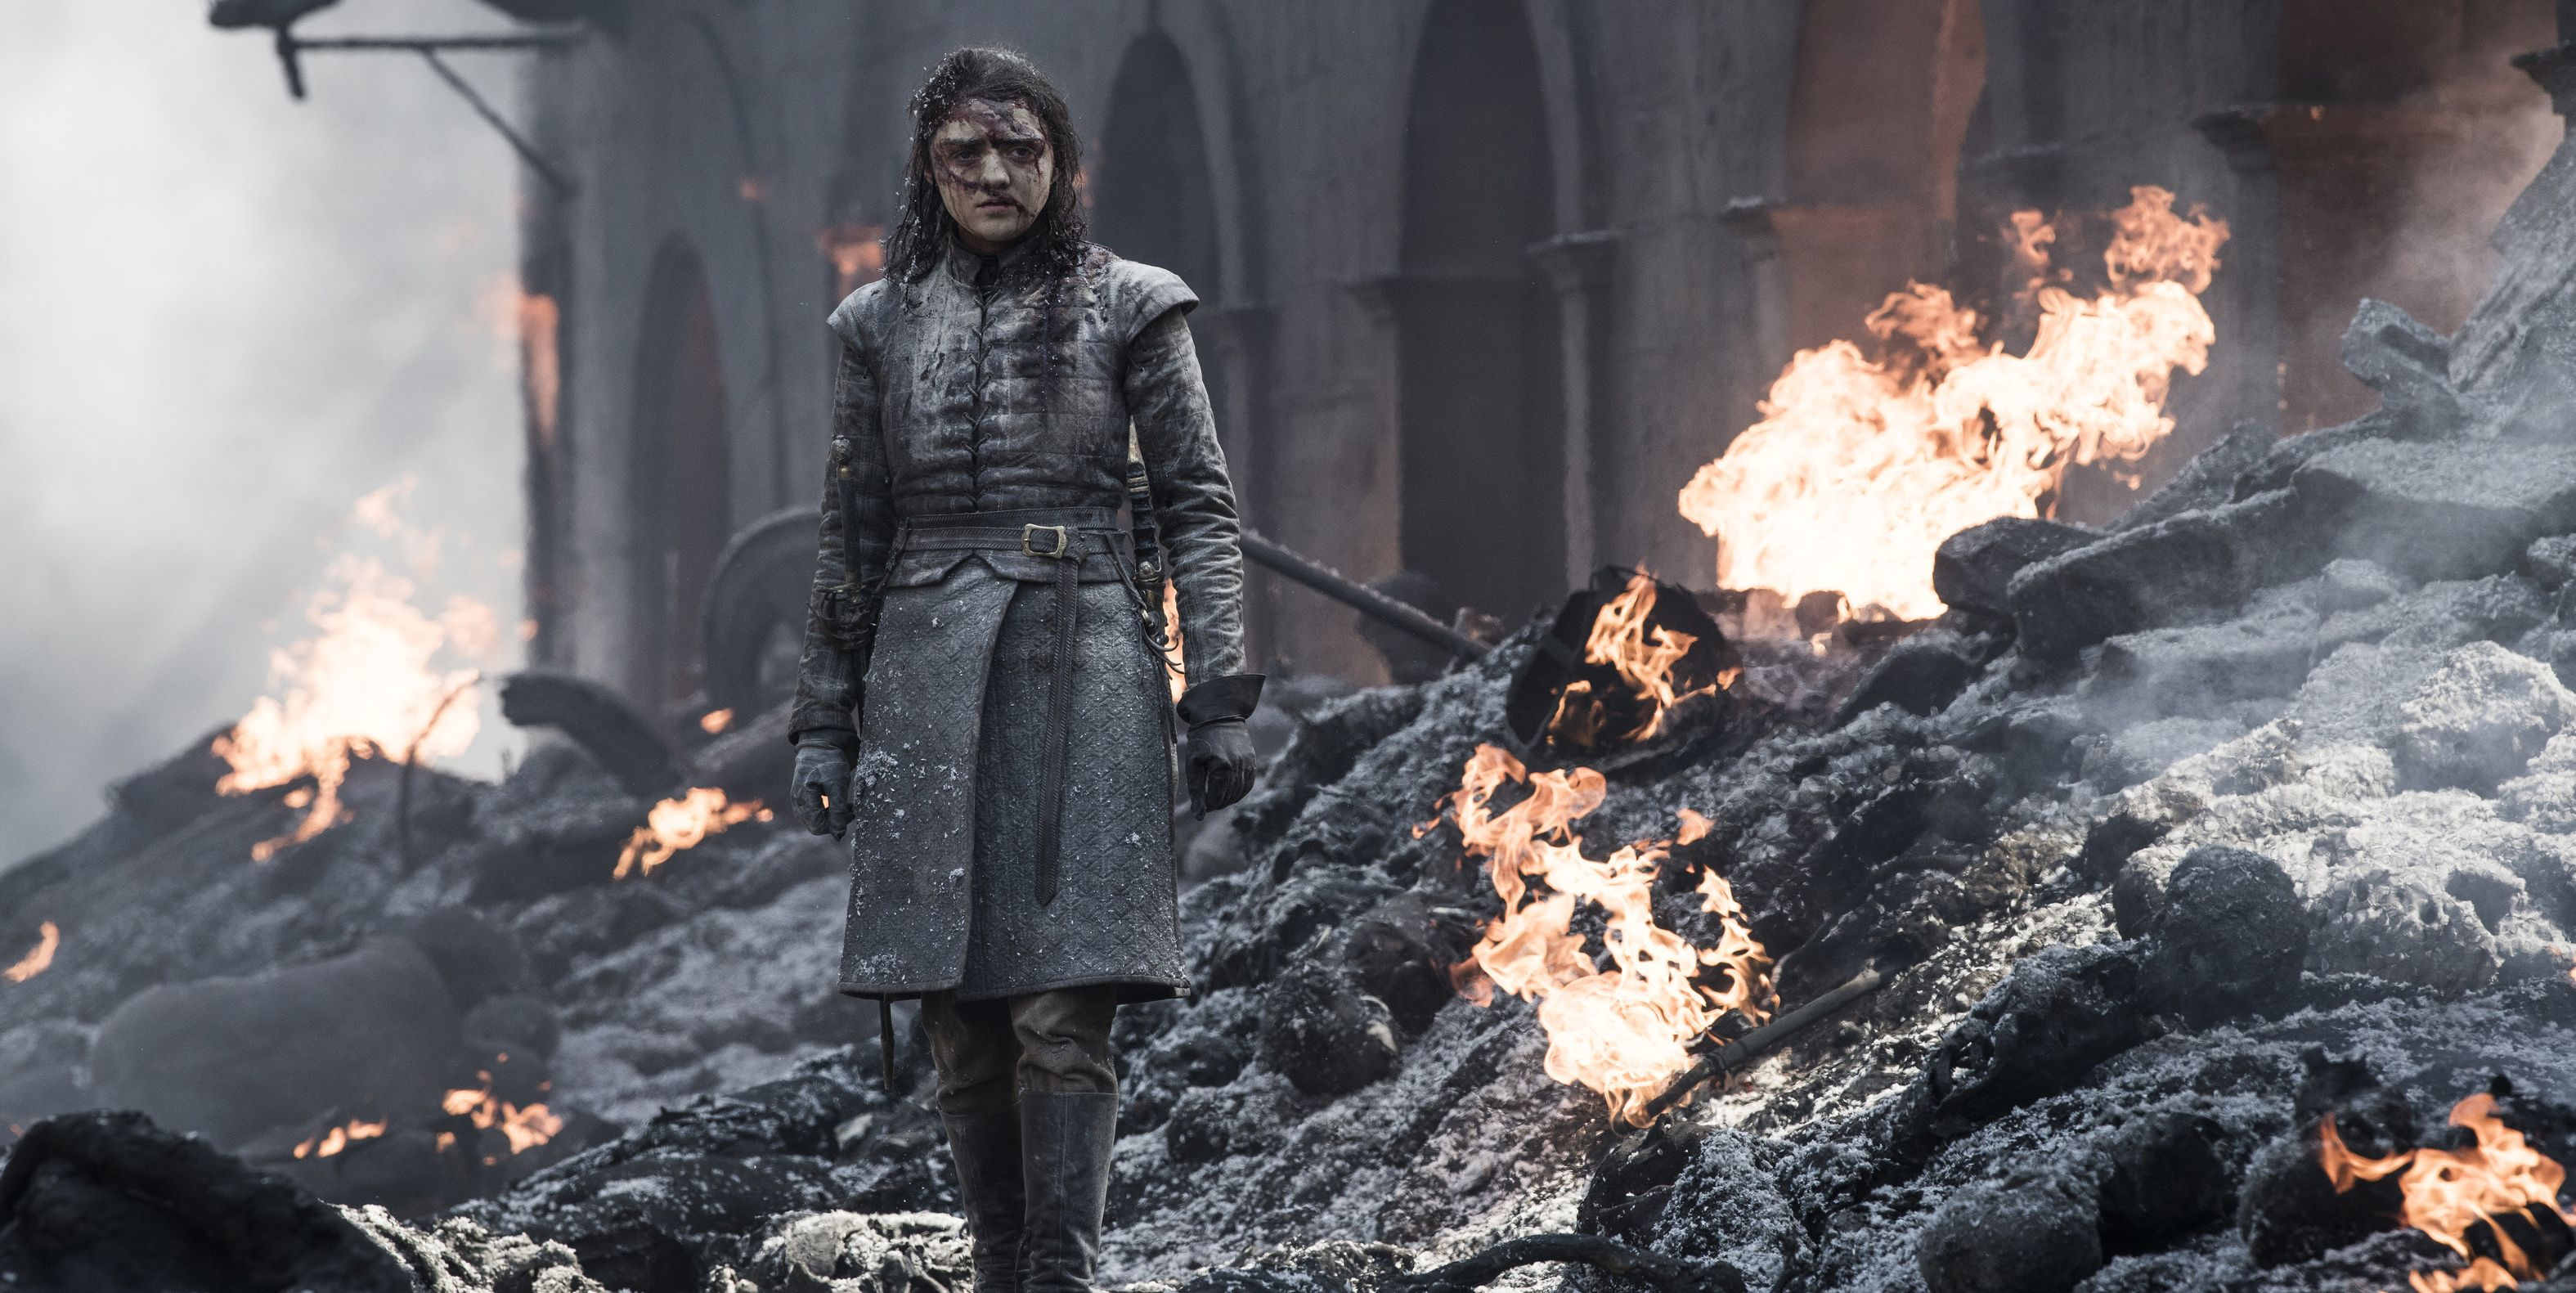 This 'Game of Thrones' Reddit Theory Claims the Season 8 Ending Is Actually What George R.R. Martin Wanted